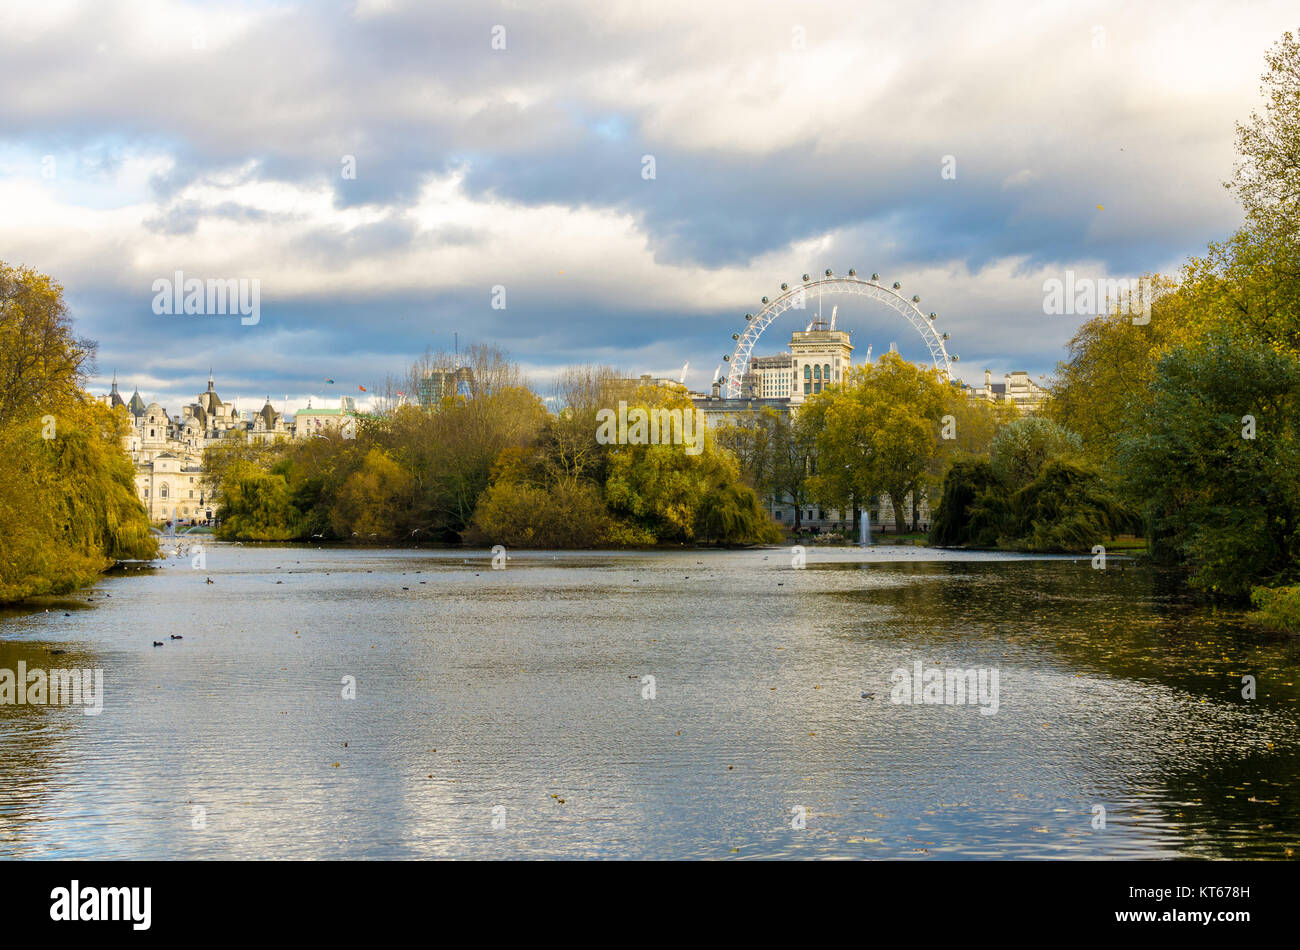 London skyline at Whitehall with the London Eye in the background. View from St James' Park in the City of Westminster. - Stock Image